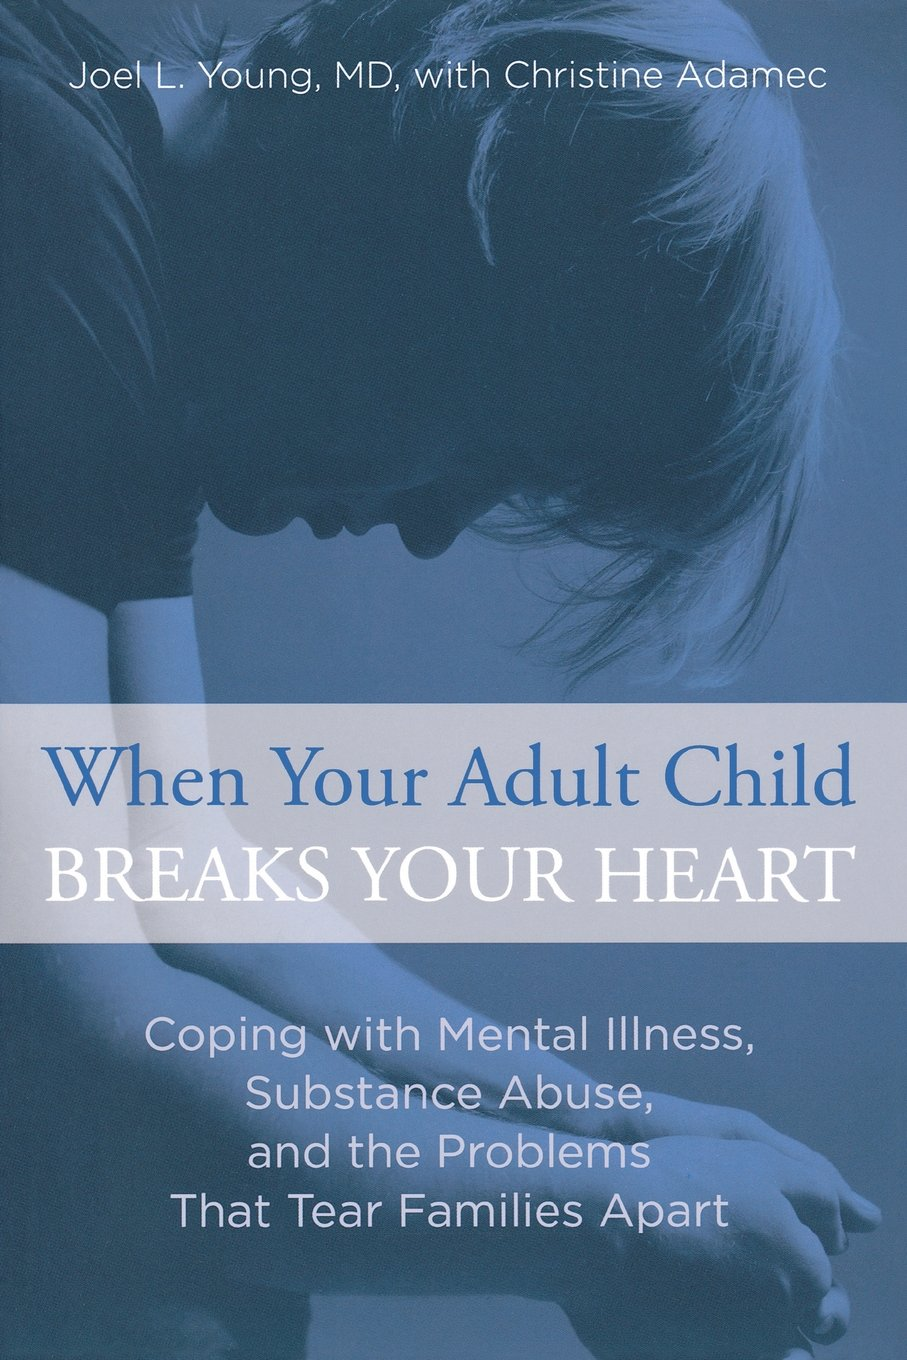 When Your Adult Child Breaks Your Heart: Coping With Mental Illness, Substance Abuse, And The Problems That Tear Families Apart by Lyons Press